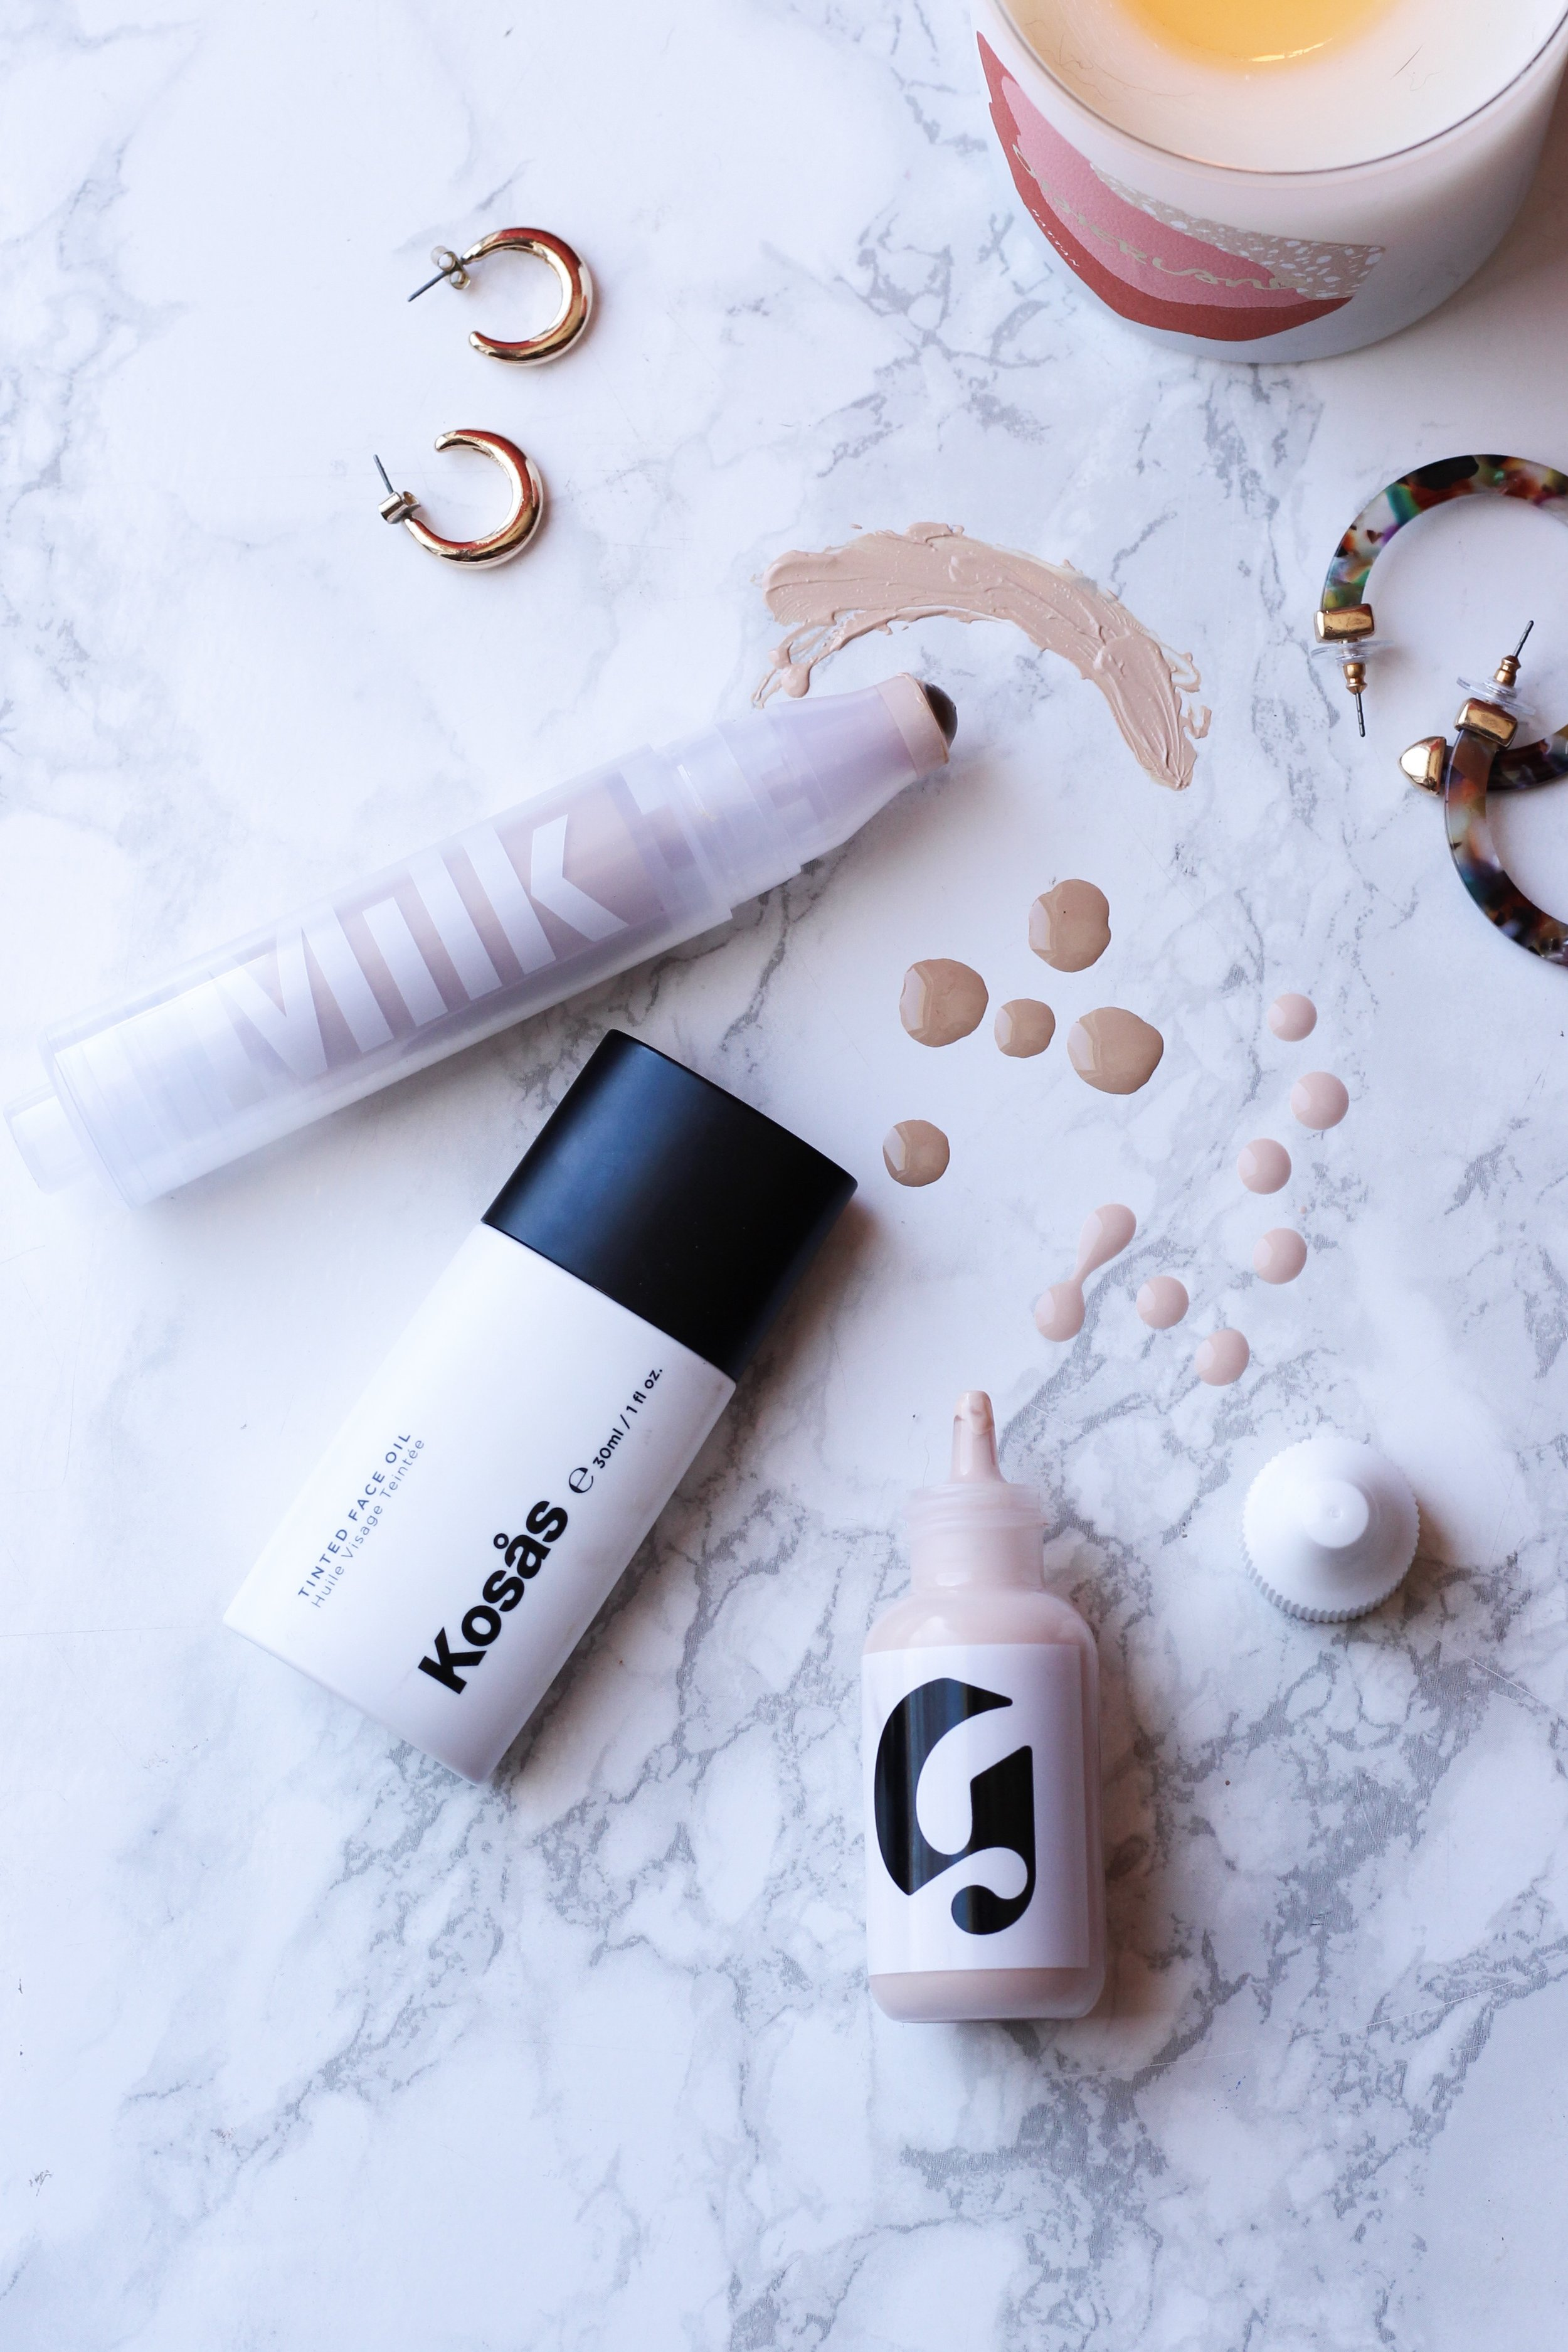 A Skin Tint Roundup Kosas Tinted Face Oil Milk Makeup Sunshine Skin Tint Glossier Perfecting Skin Tint Beauty By Kelsey